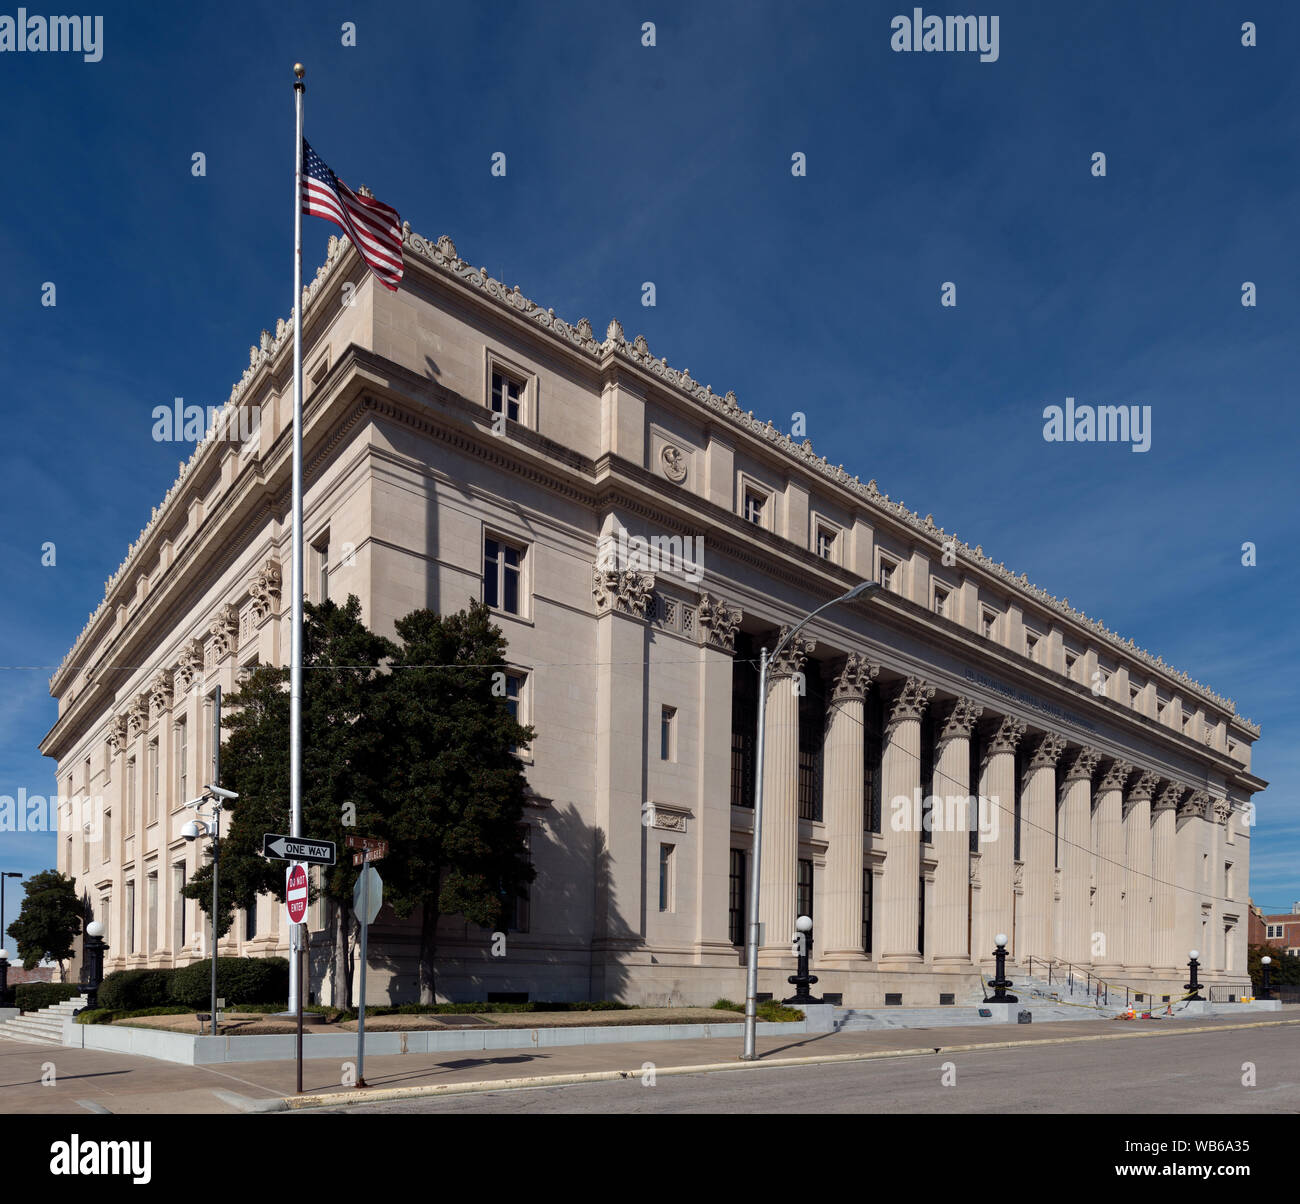 Exterior of the Ed Edmondson Courthouse, also known as the U.S. Post Office and Courthouse, occupies an entire block between West Broadway, West Okmulgee Avenues and Fifth Street, Muskogee, Oklahoma Stock Photo